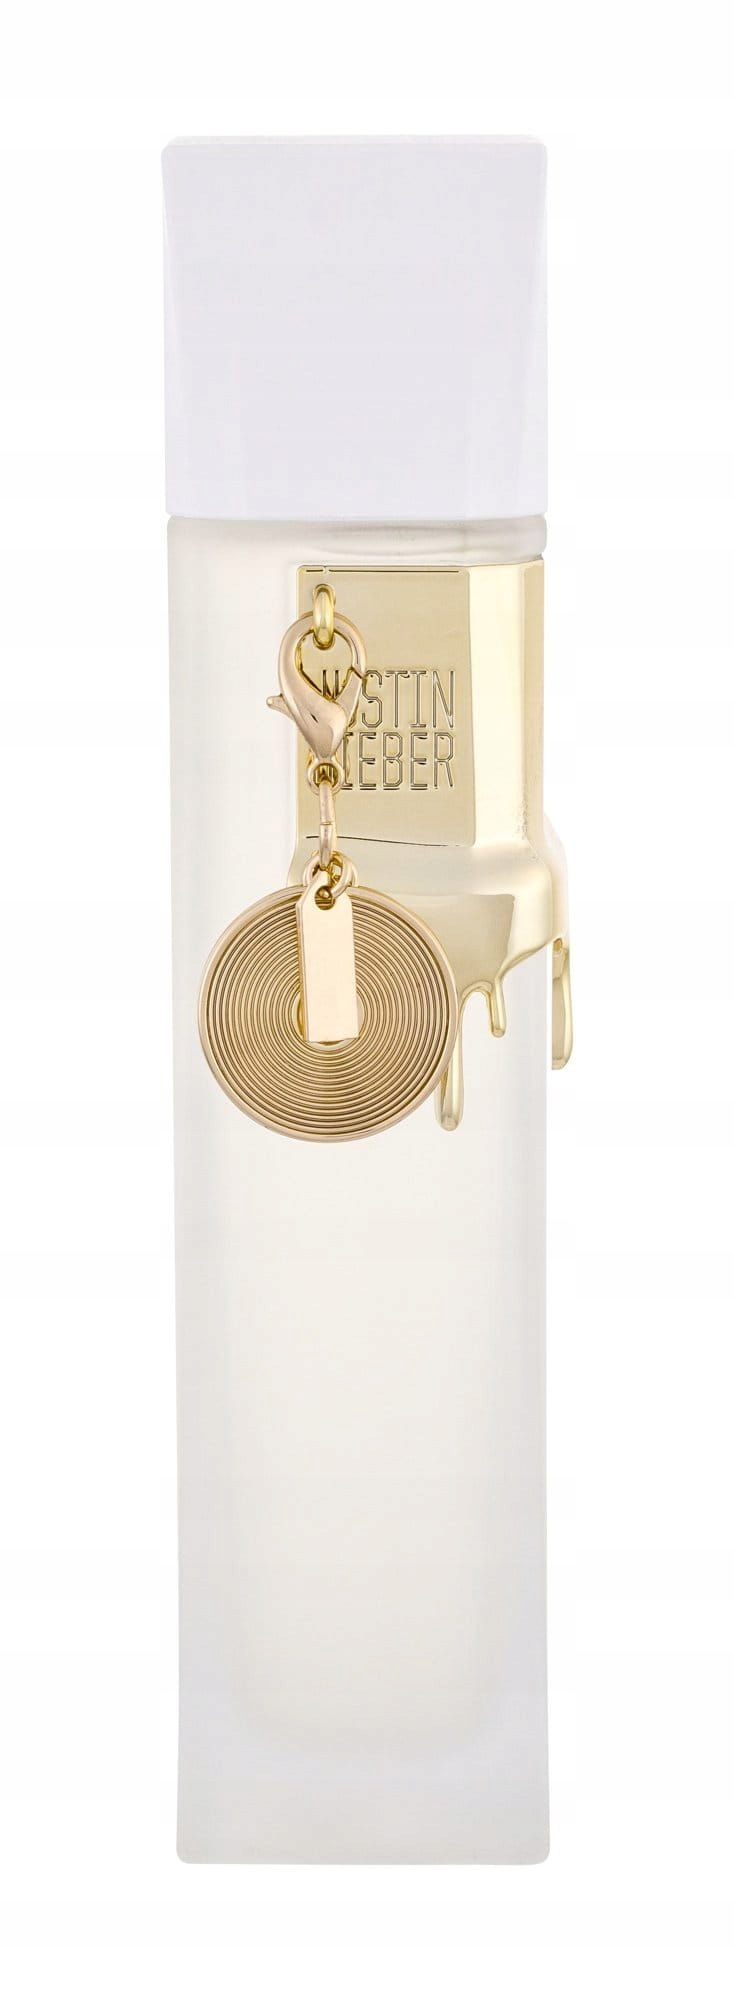 Justin Bieber Collector's Edition edp 100ml